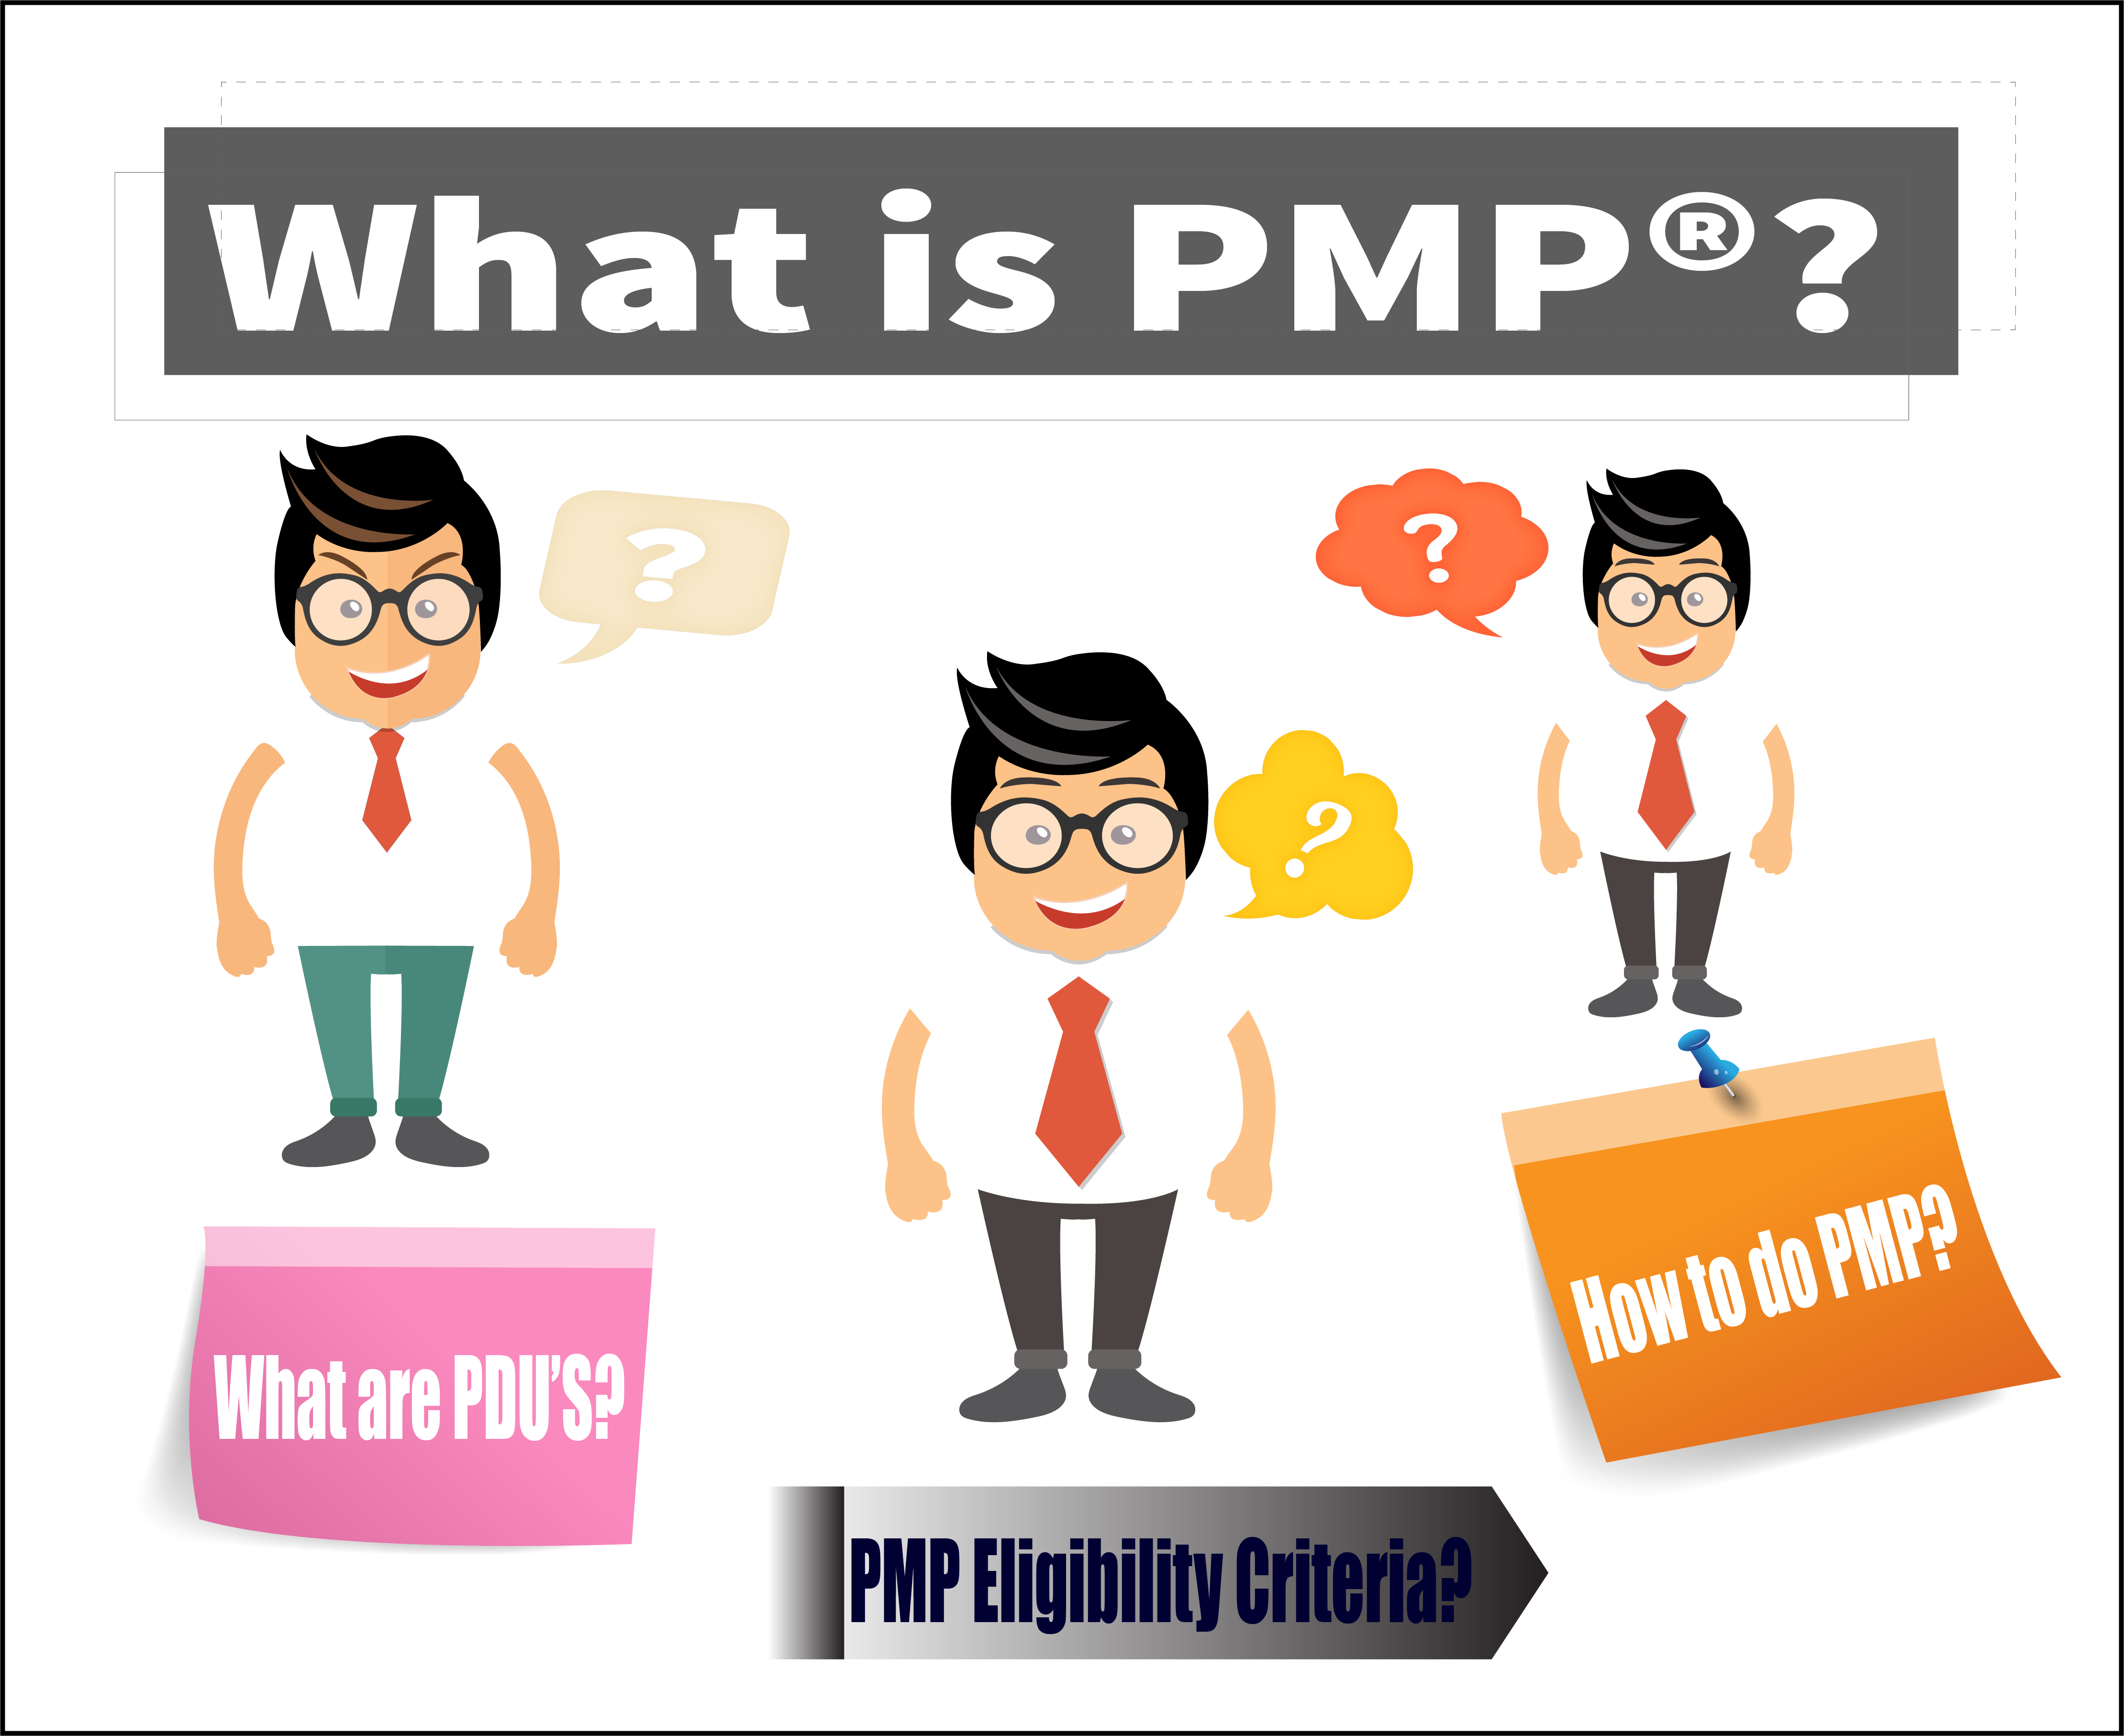 What is PMP?